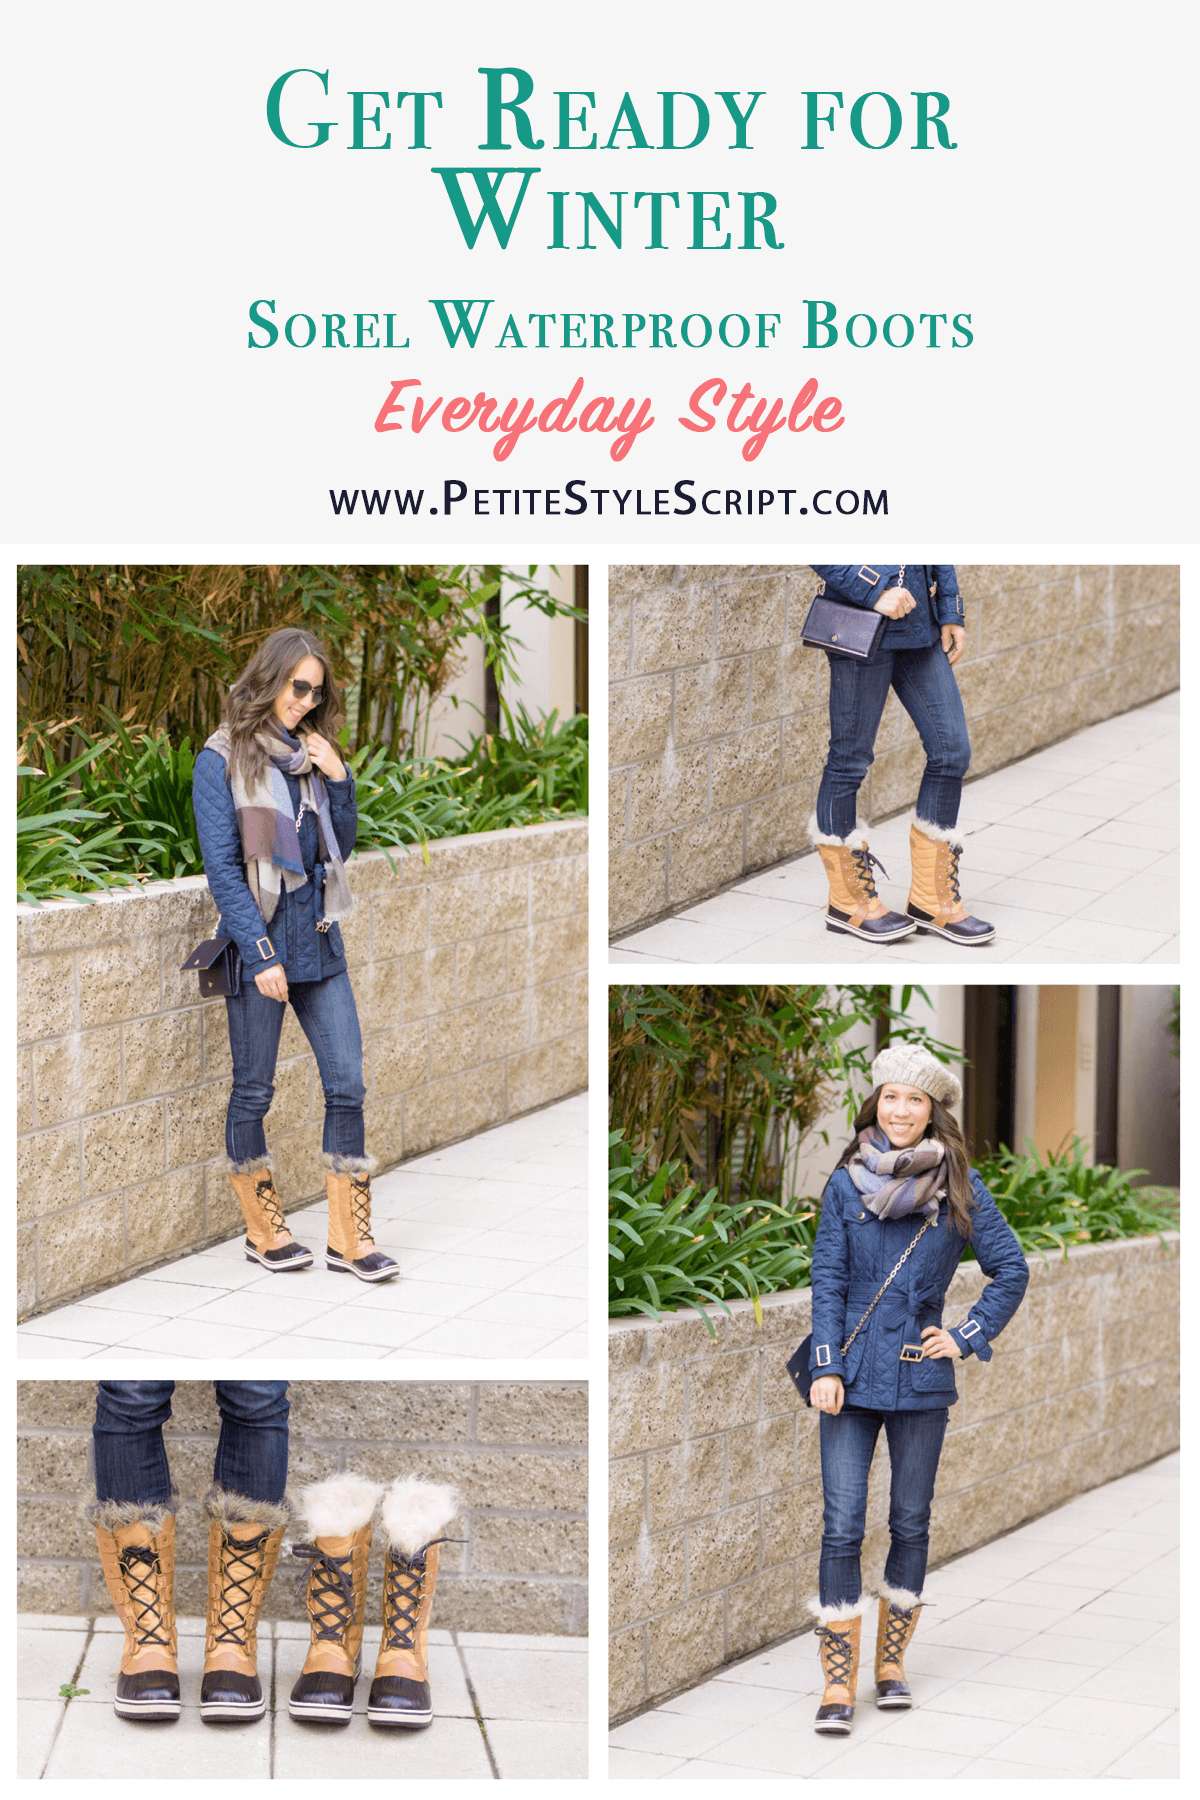 Burberry Home Decor Get Ready For Winter Sorel Waterproof Boots Review